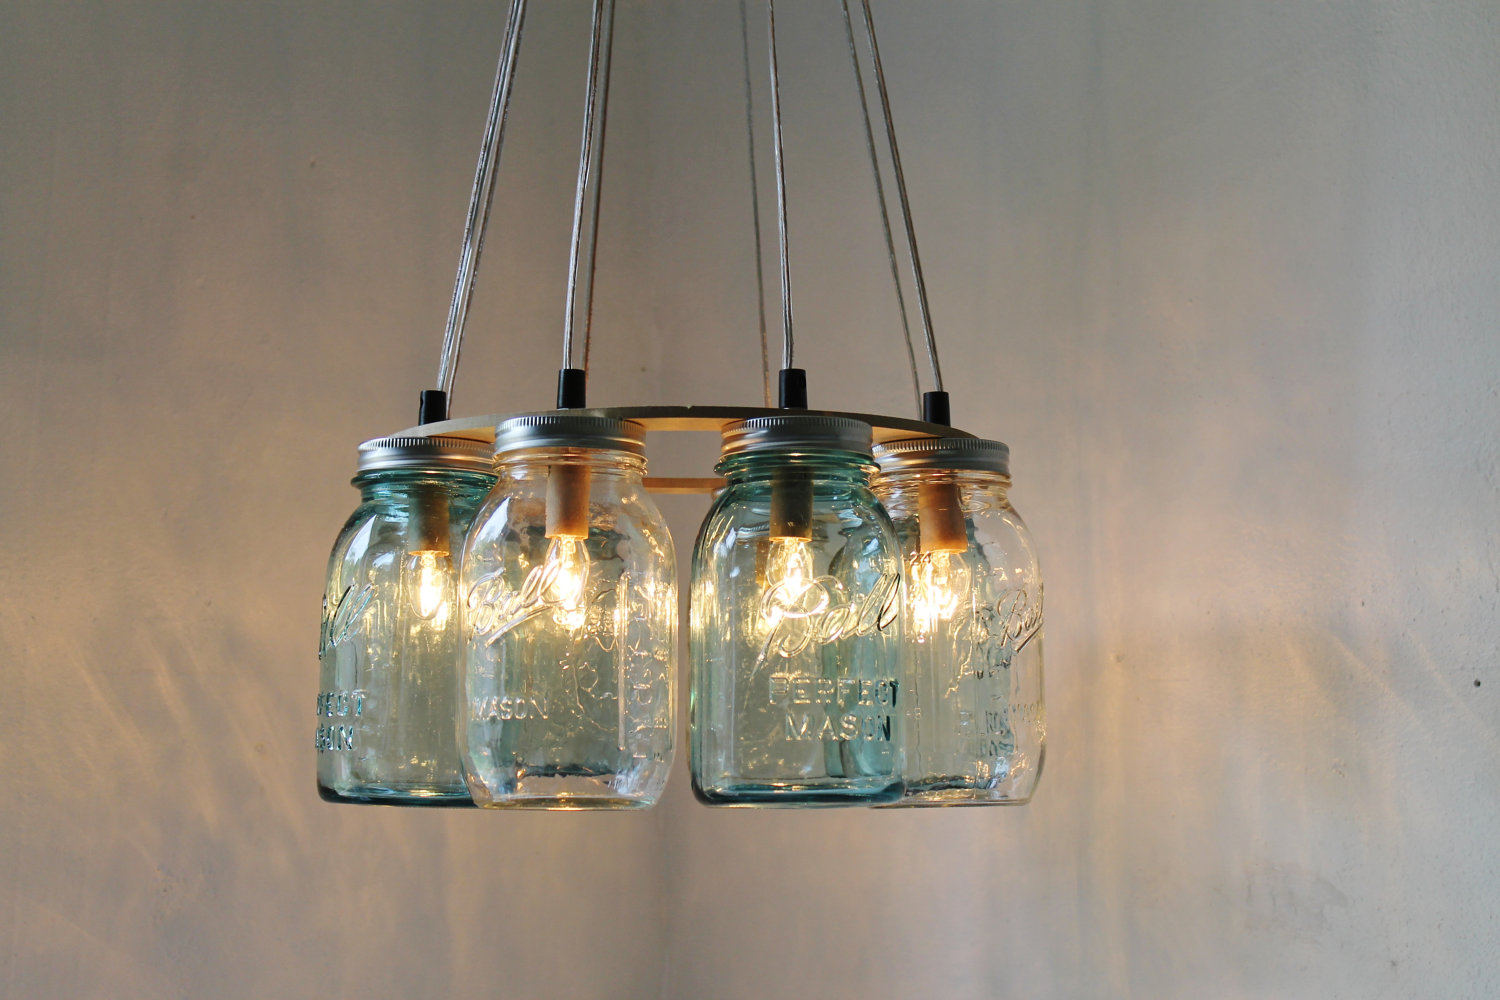 Unique Hand Made Pendant Lamp From Some Mason Jars